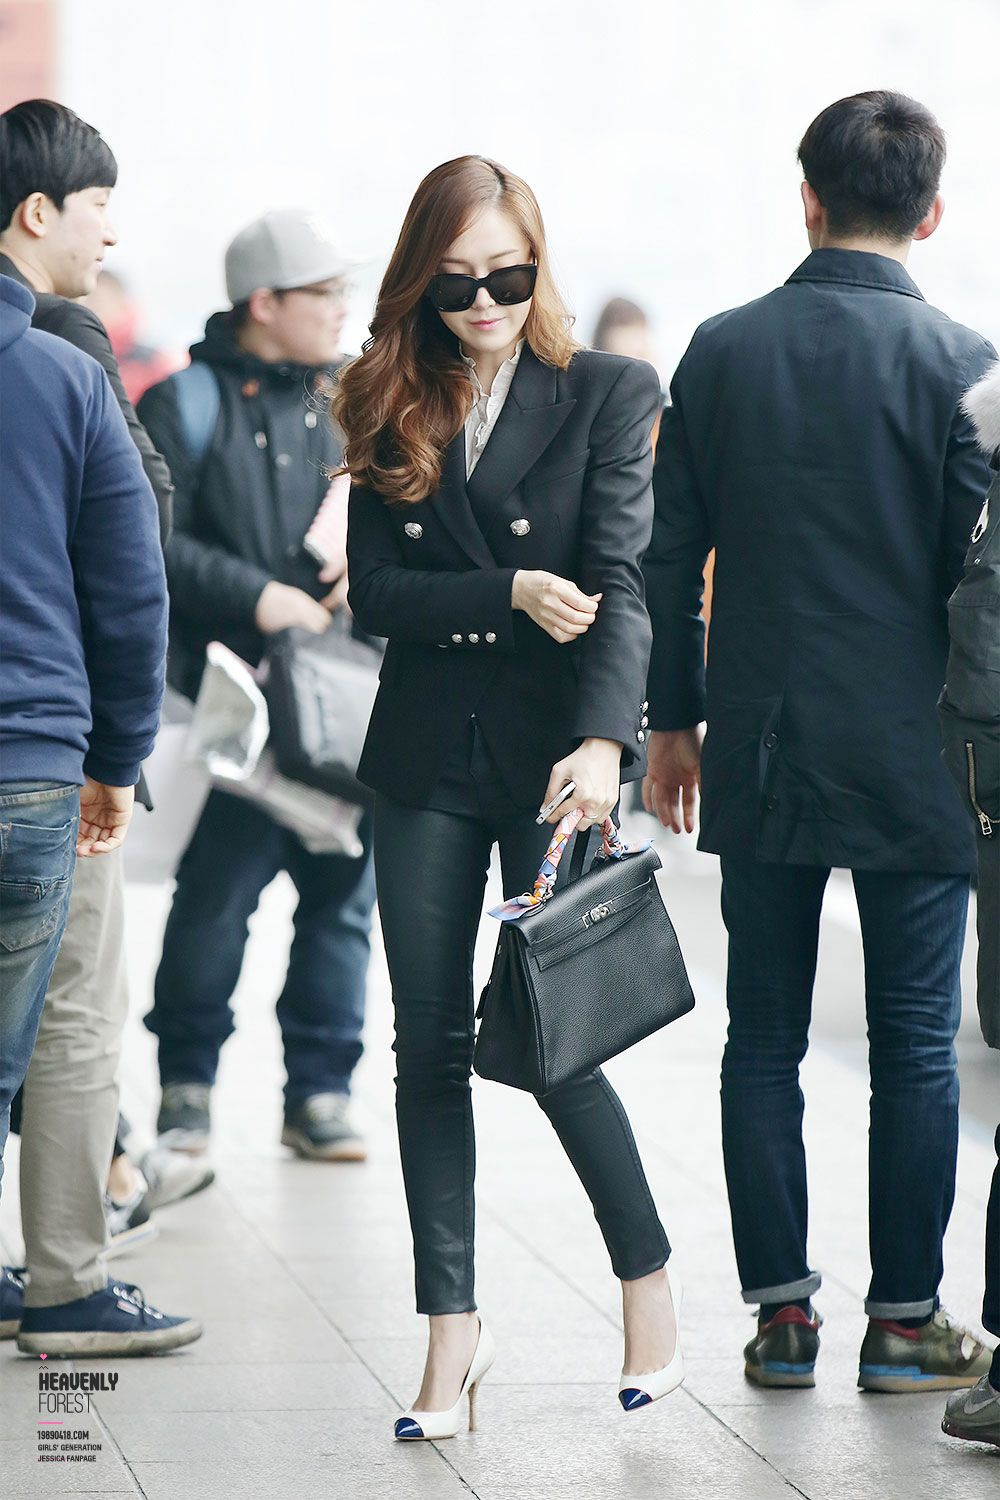 Snsd Jessica Mrmr Airport Style Snsd Jessica Pinterest Fashion Wallpaper Airport